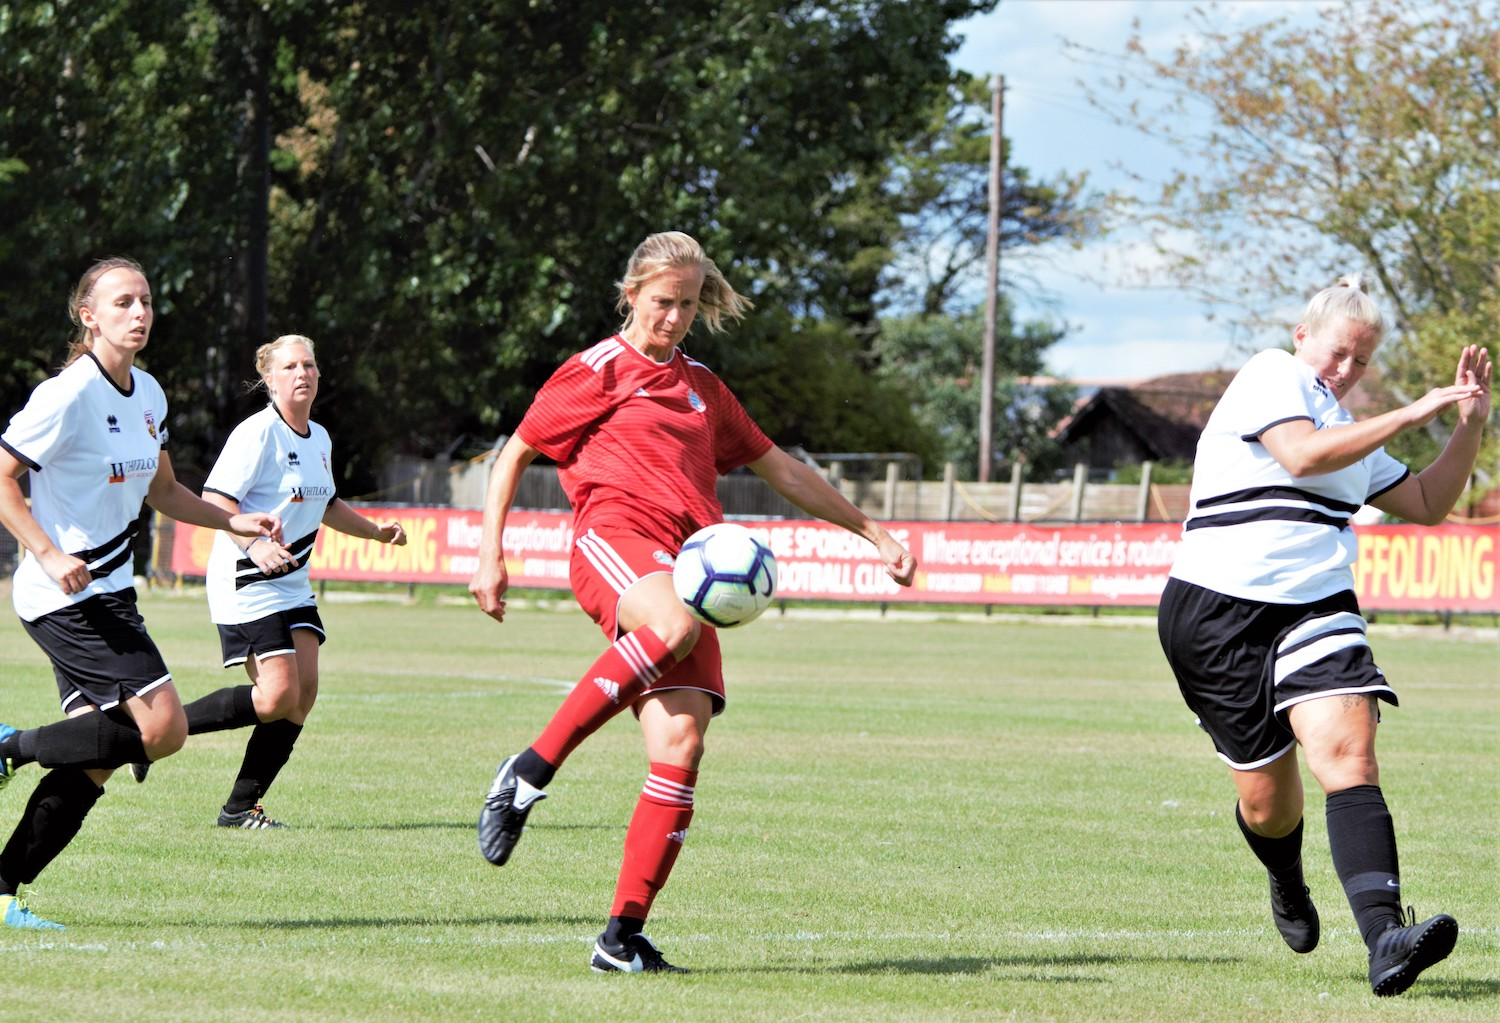 Read the full article - Worthing edge past Pagham to progress in Women's FA Cup